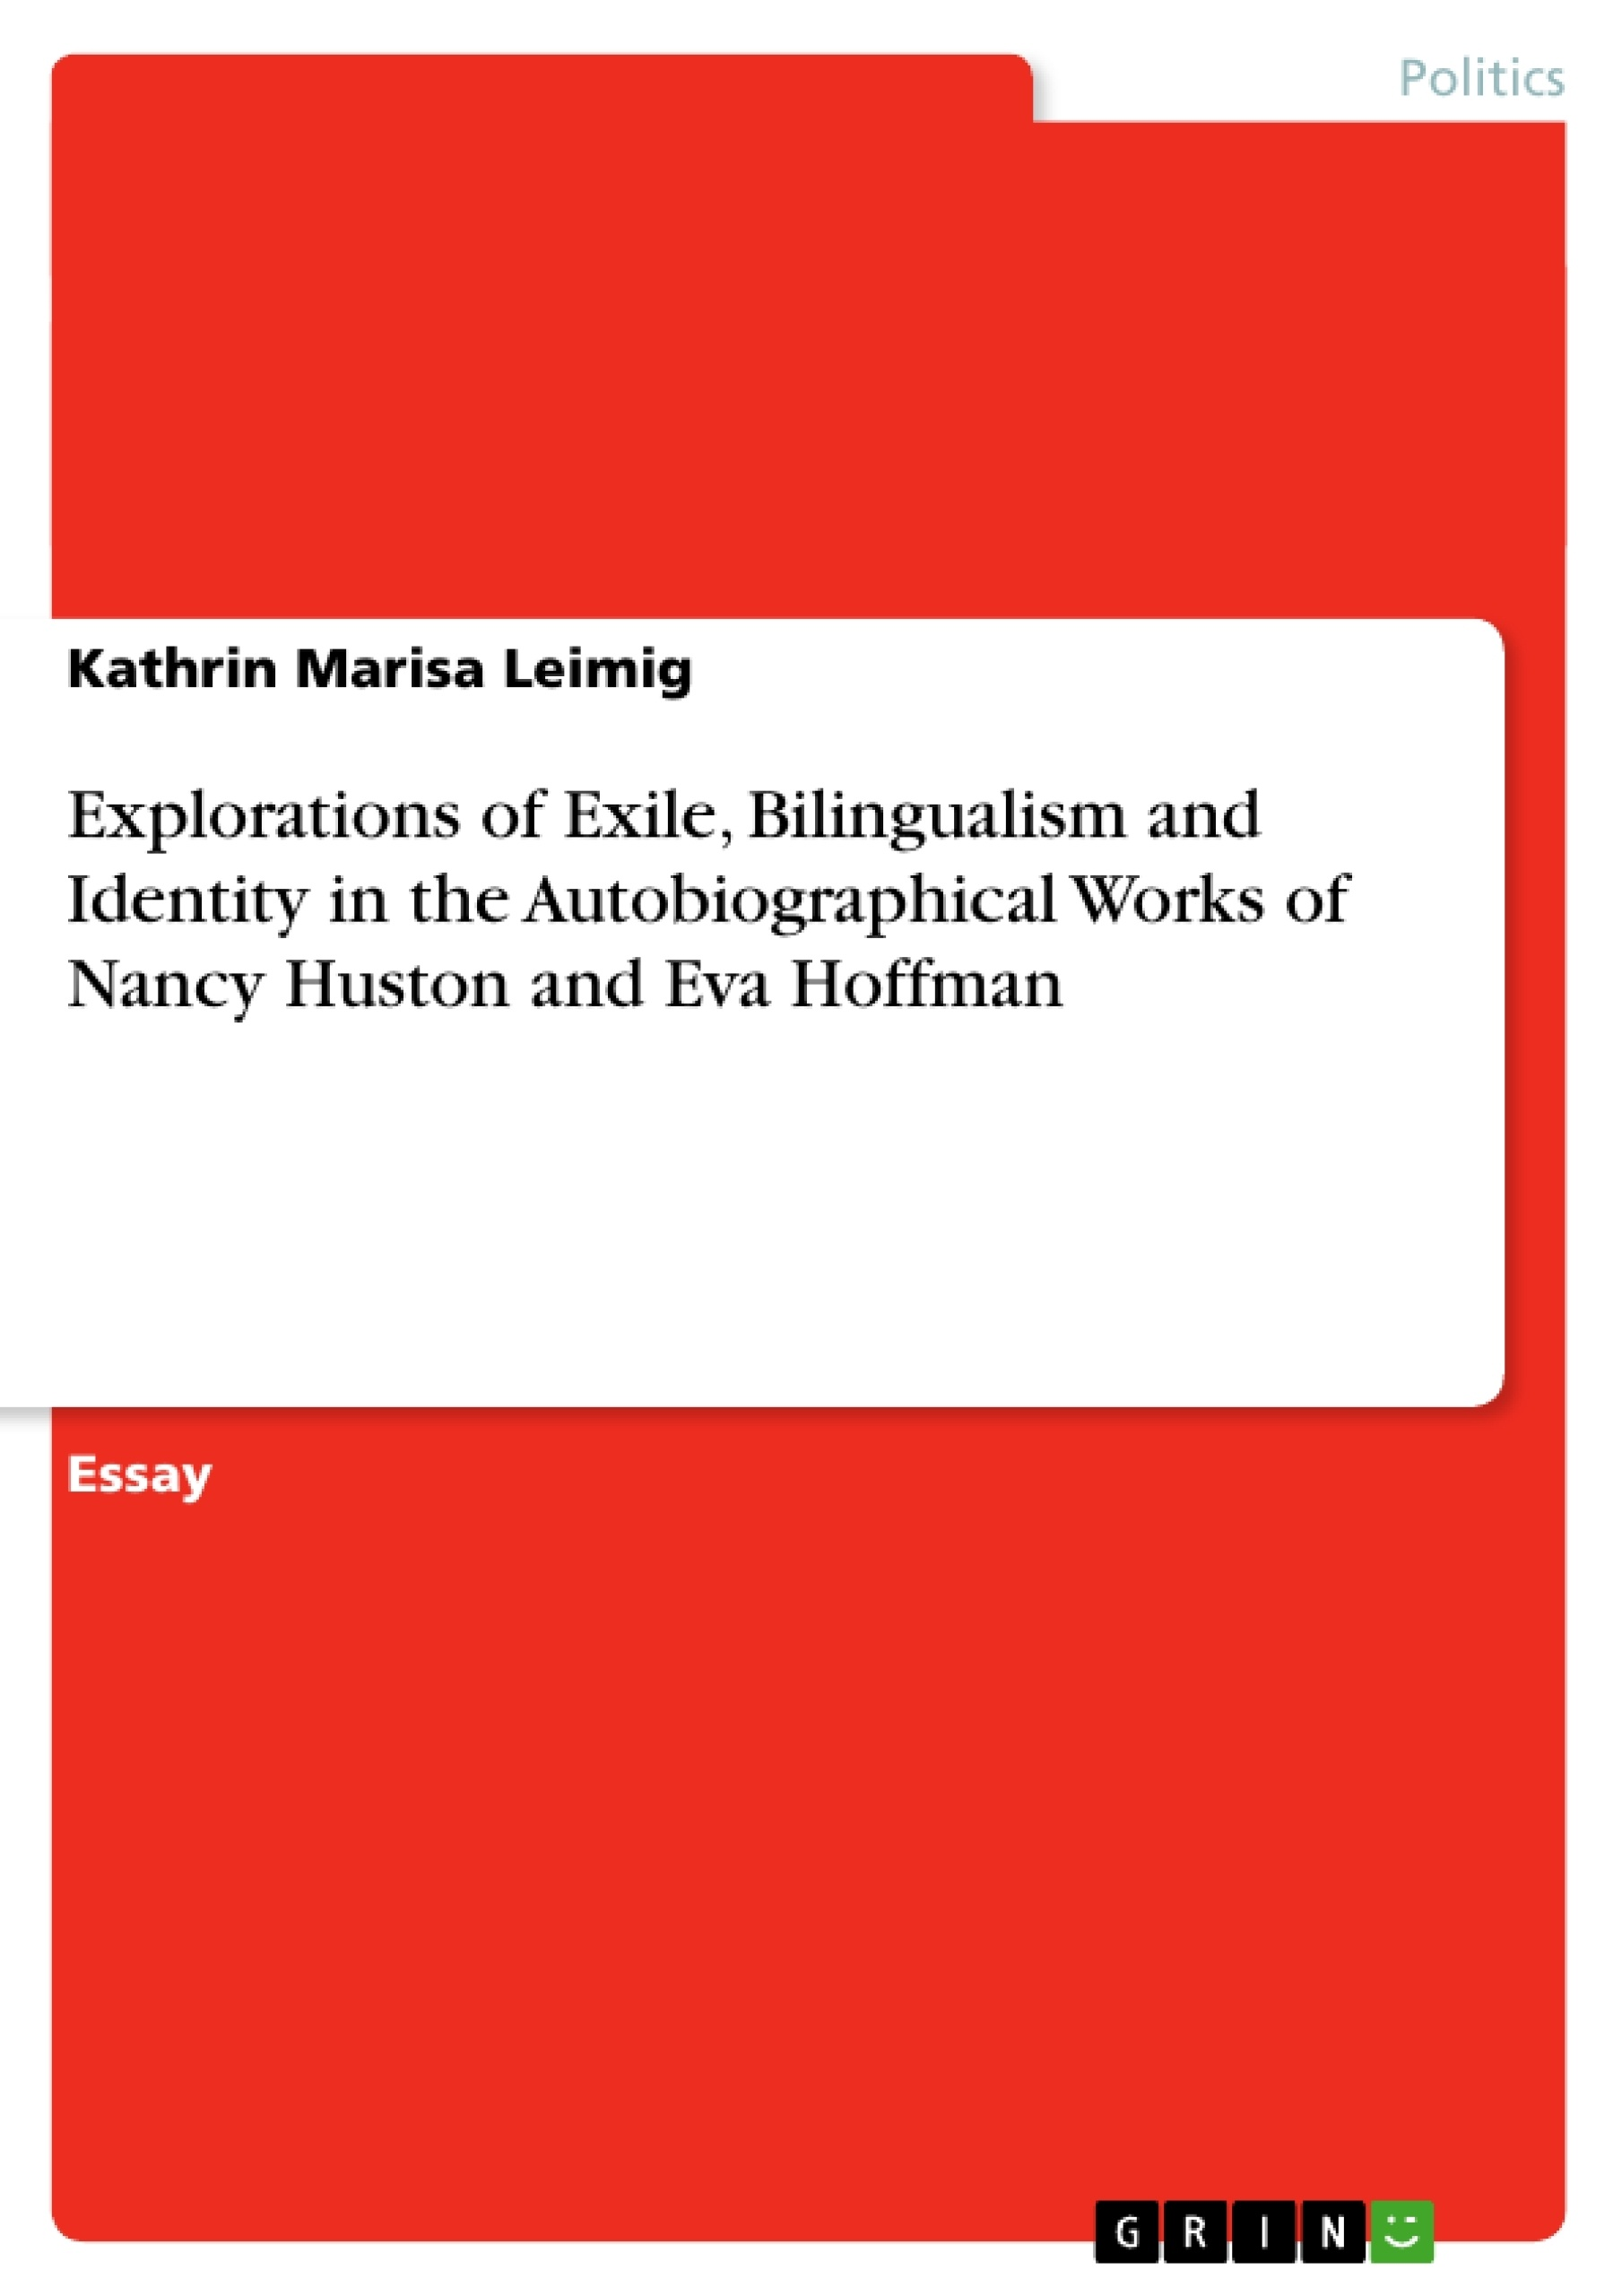 Title: Explorations of Exile, Bilingualism and Identity in the Autobiographical Works of Nancy Huston and Eva Hoffman